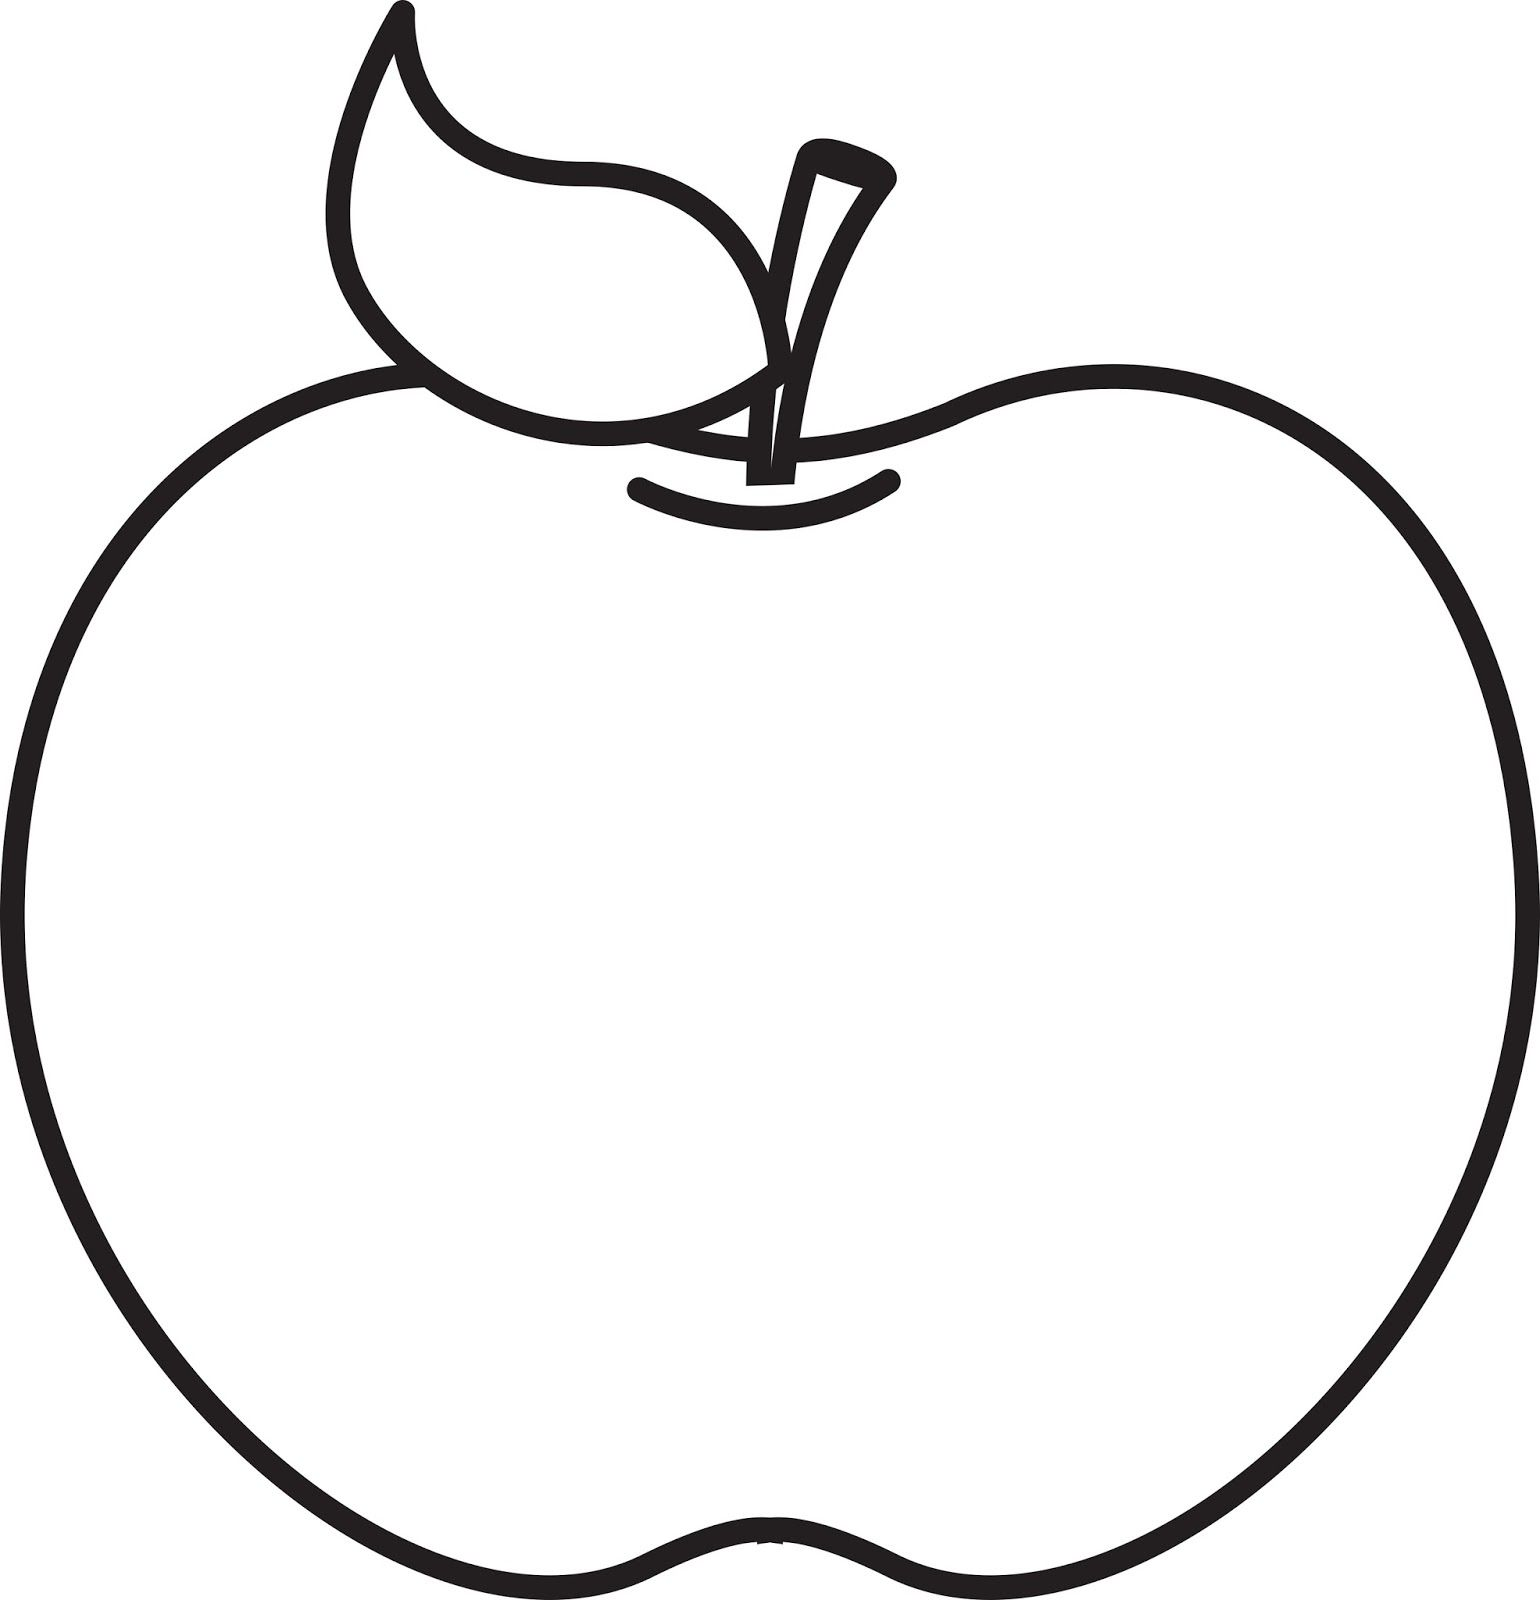 image result for apple clipart black and white lett pinterest rh pinterest com apple clip art free apple clip art free